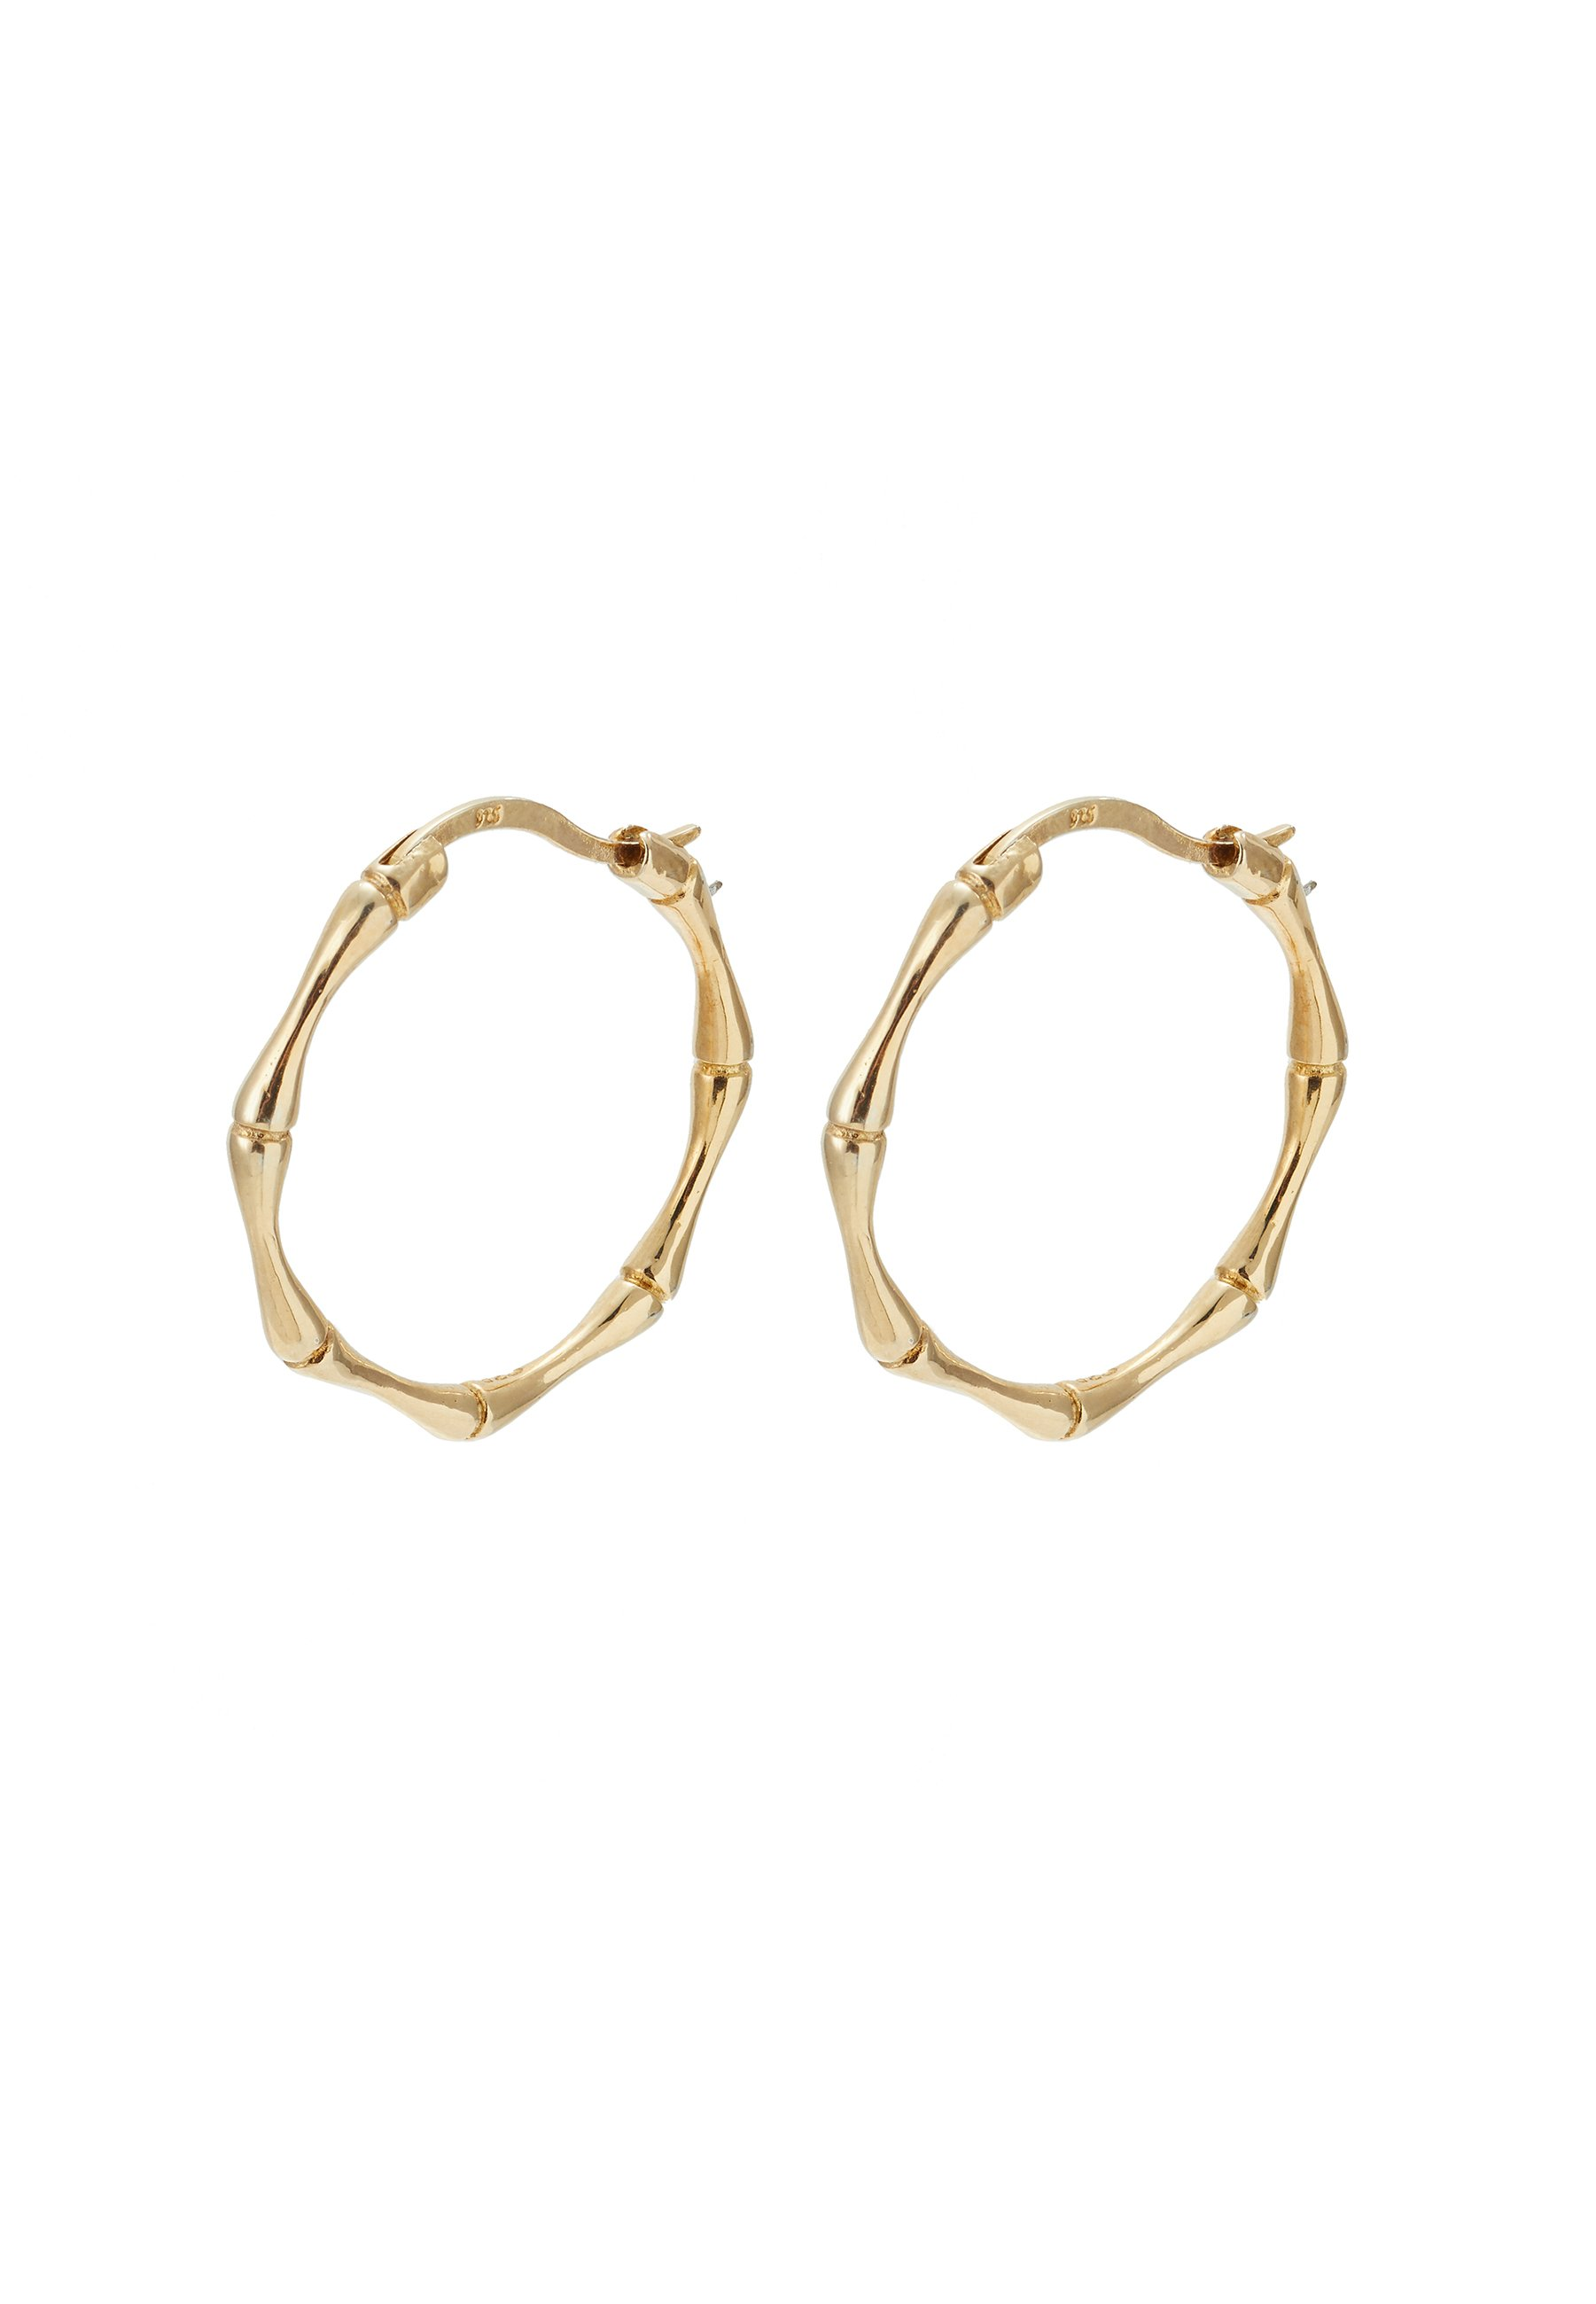 2020 Newest Clearance Accessories LIARS & LOVERS BAMBOO HOOPS Earrings gold rdLDUW8tV 8P4fee9h4